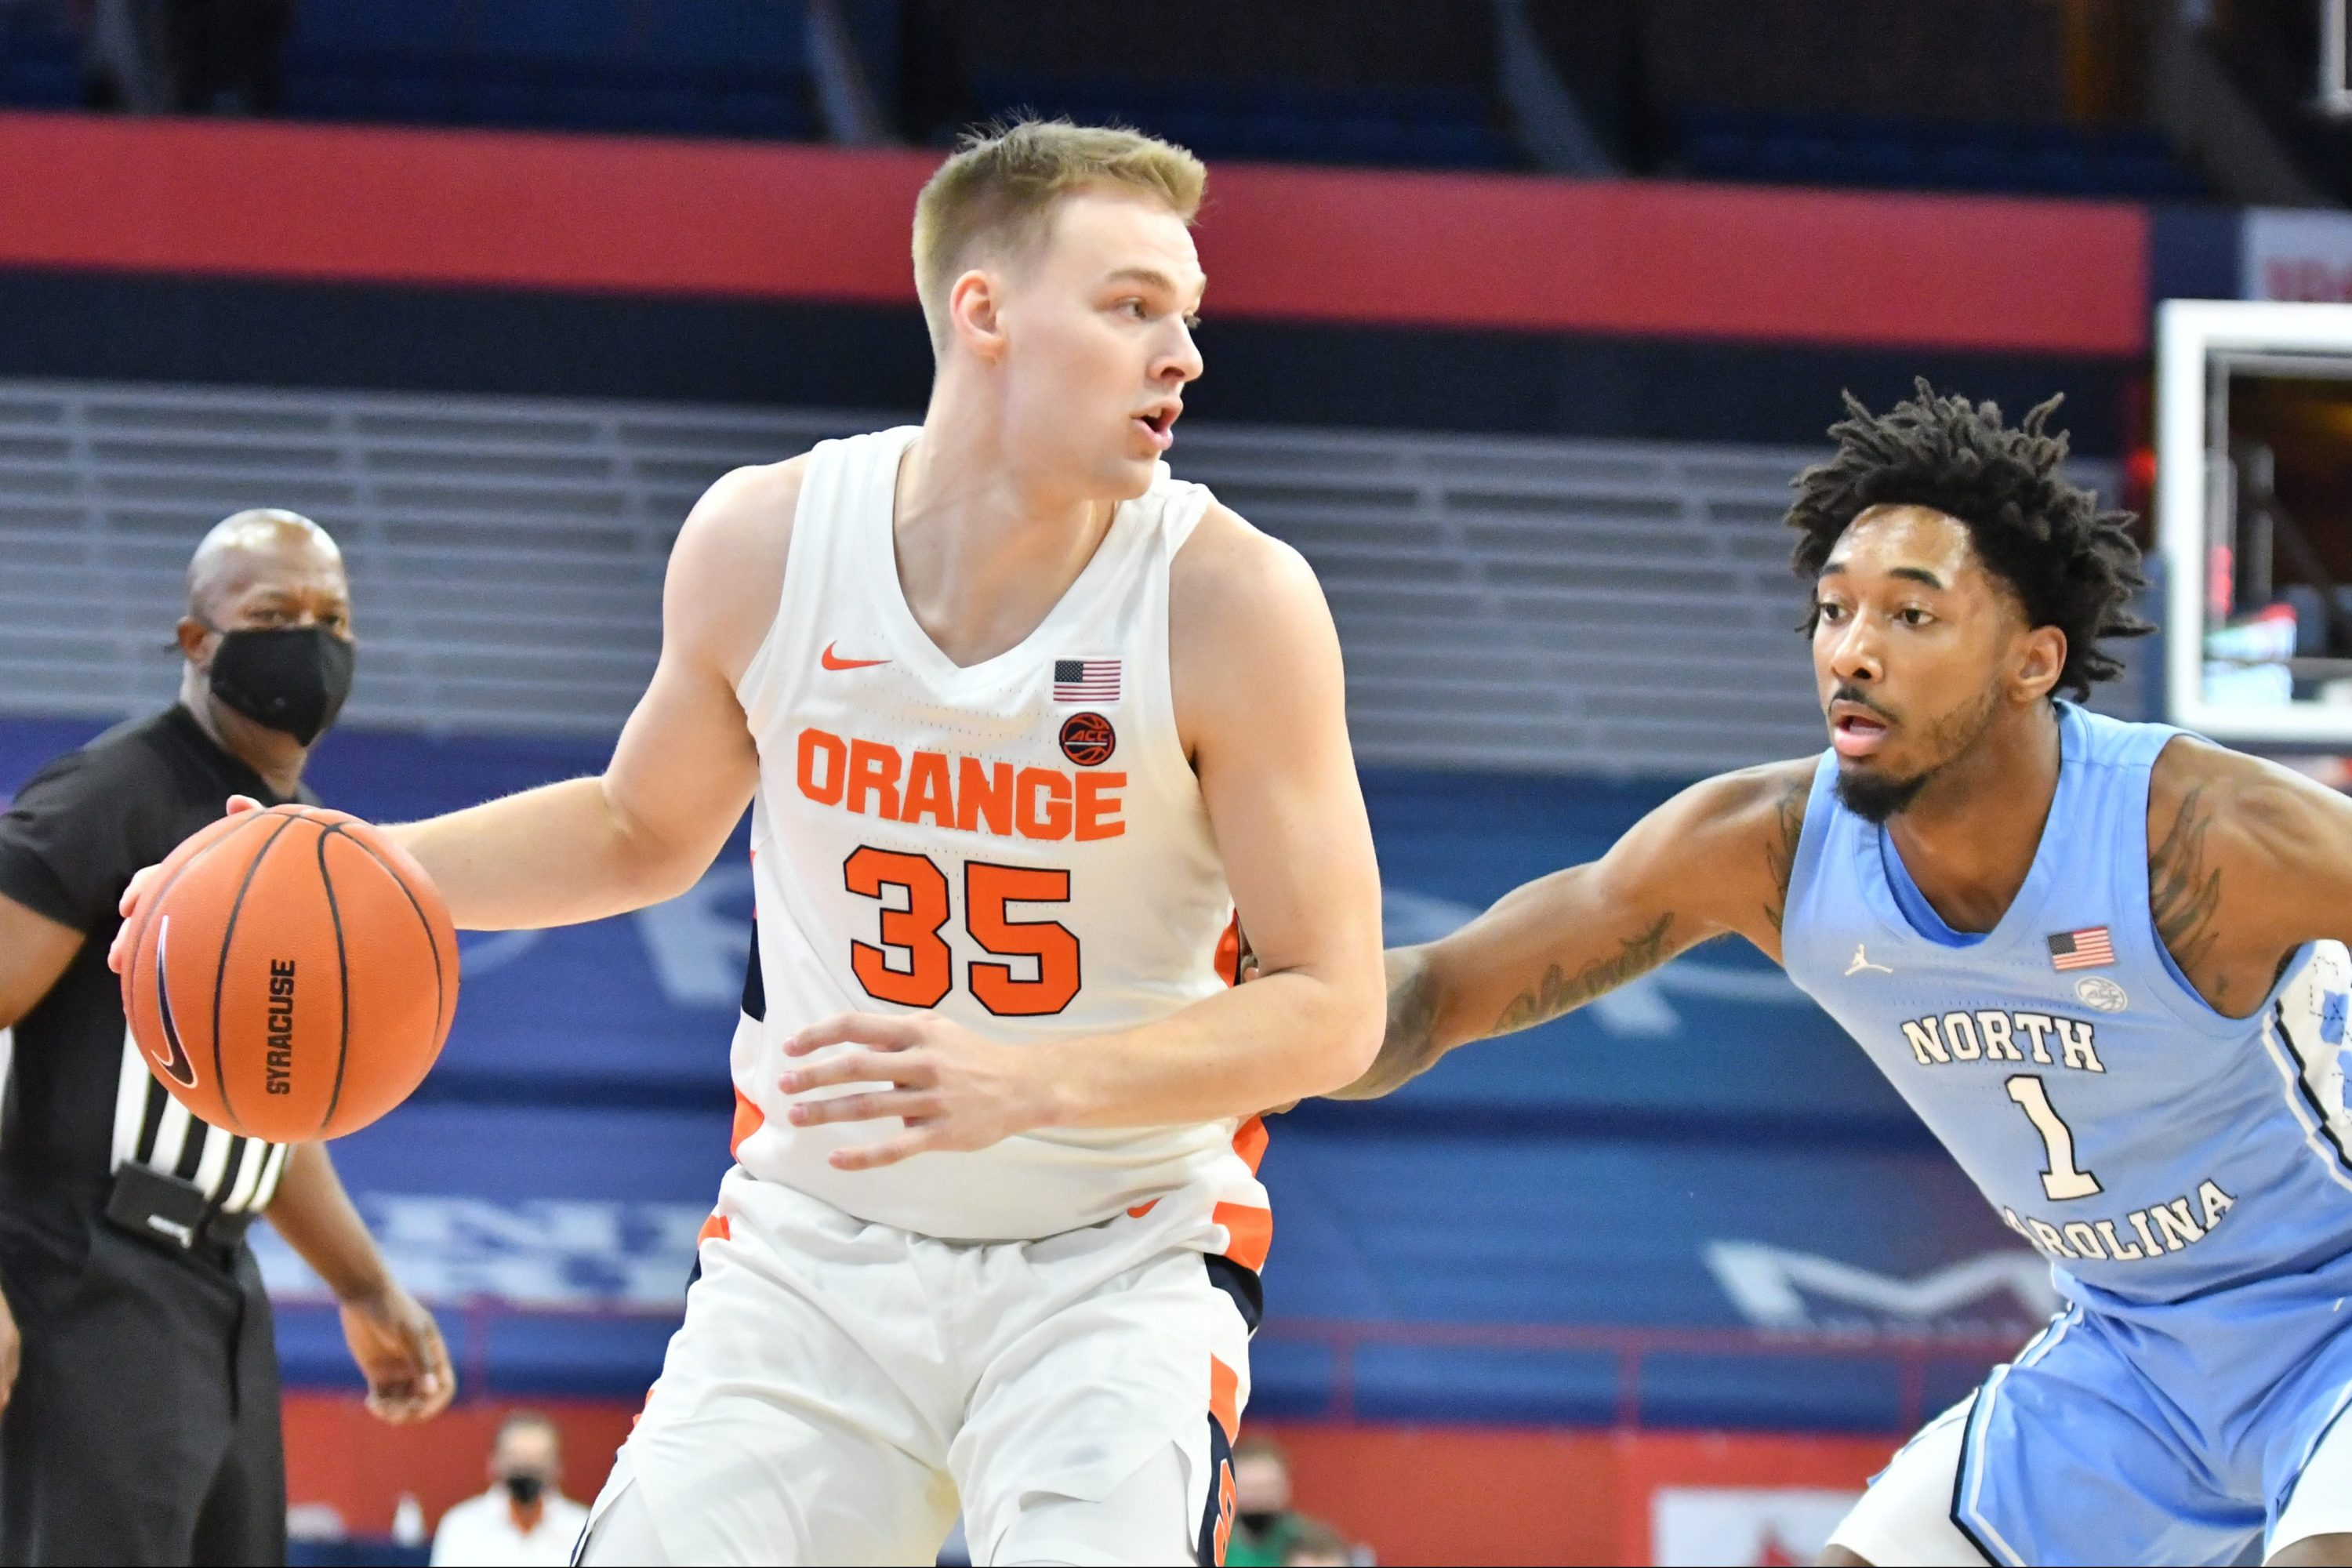 Mar 1, 2021; Syracuse, New York, USA; Syracuse Orange guard Buddy Boeheim (35) tries to get the ball past North Carolina Tar Heels guard Leaky Black (1) in the first half at the Carrier Dome. Mandatory Credit: Mark Konezny-USA TODAY Sports